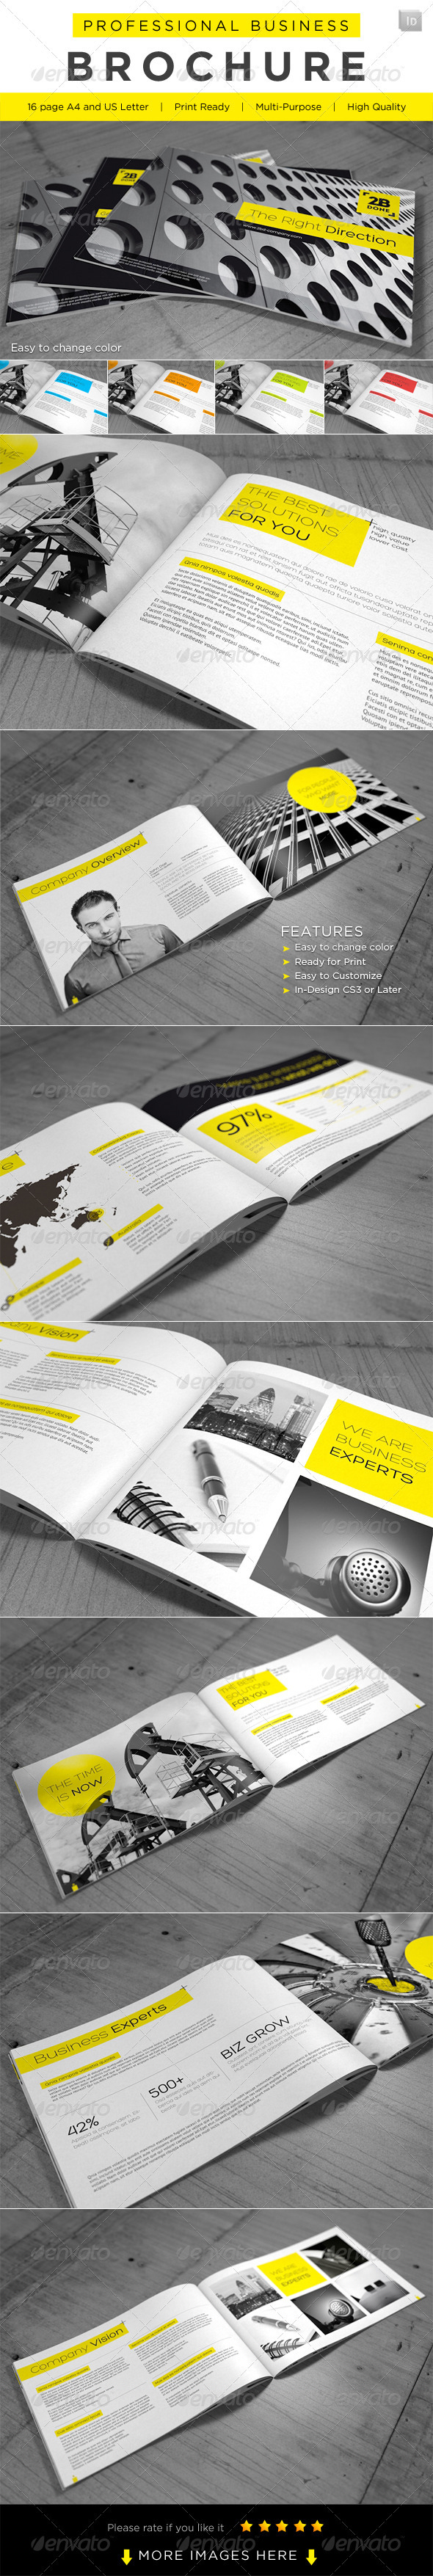 Professional Business Brochure - Brochures Print Templates